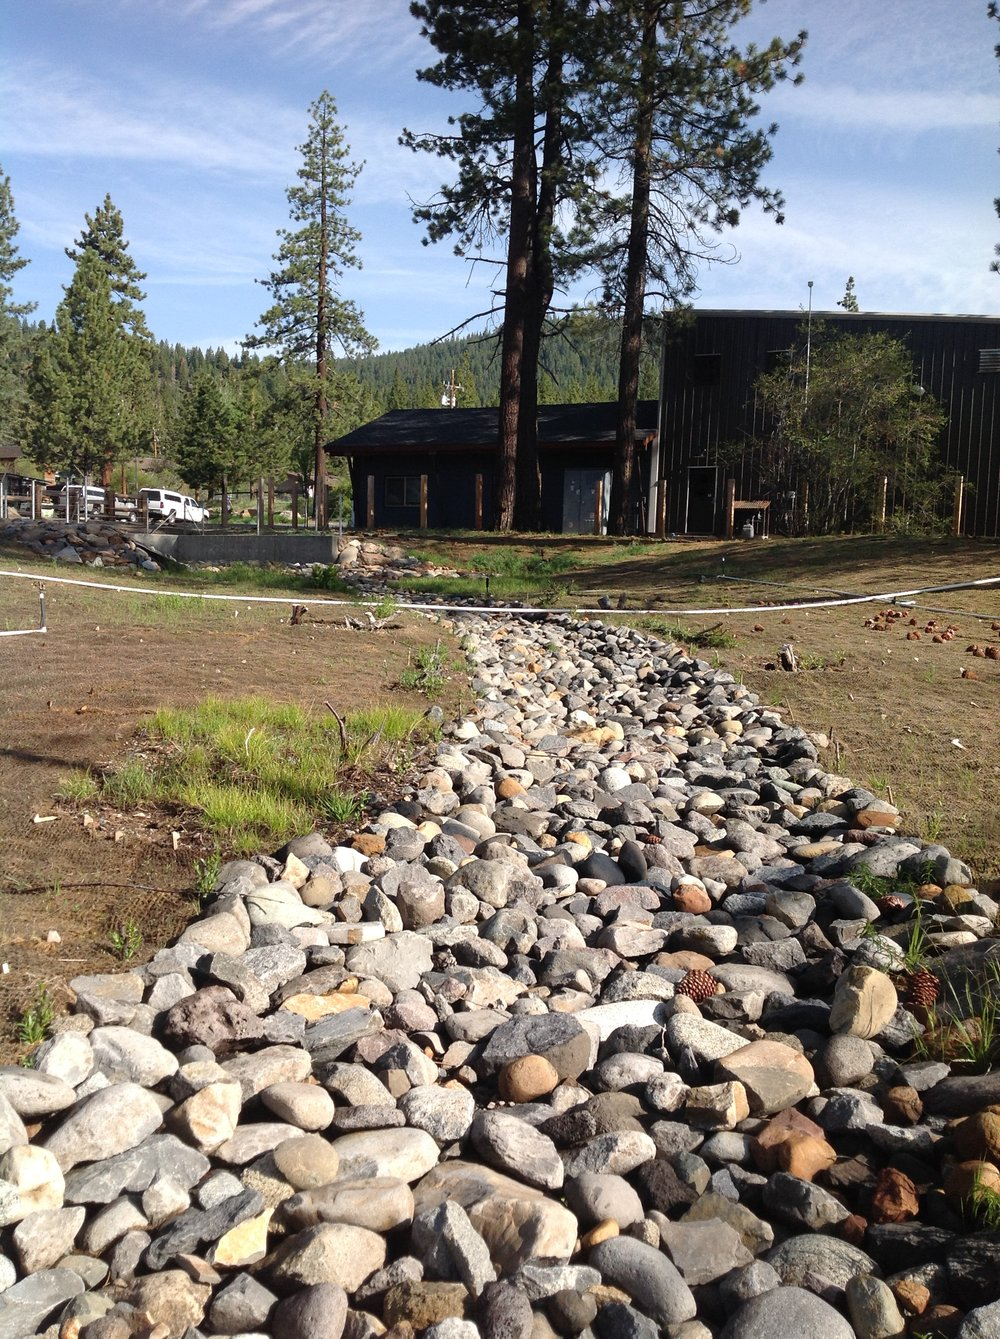 AFTER: Restored stream channel for natural stormwater conveyance. Photo by Suzanne Wilkins.